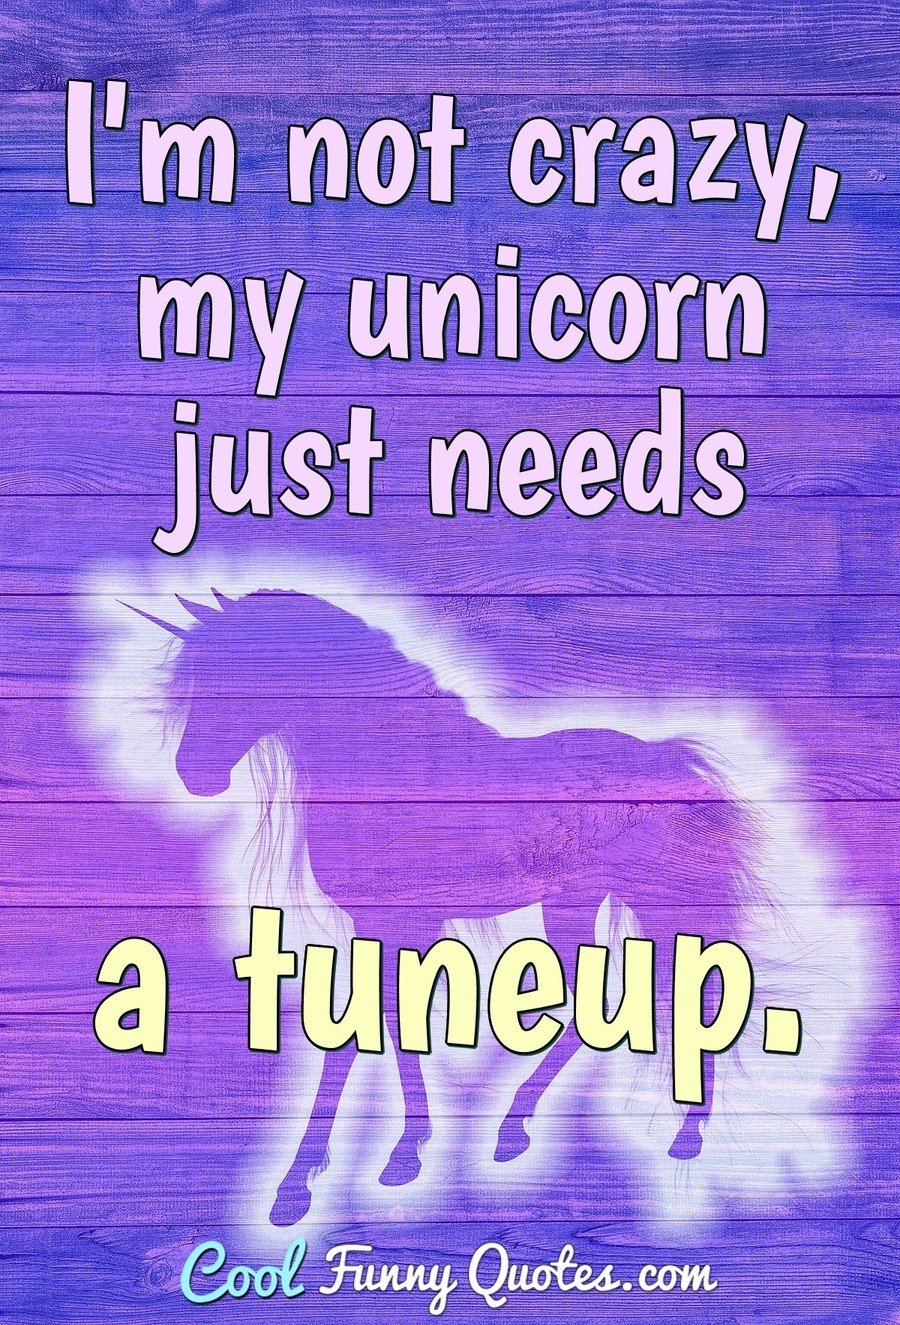 Image of: Wallpaper Anonymous Quote Cool Funny Quotes Im Not Crazy My Unicorn Just Needs Tuneup